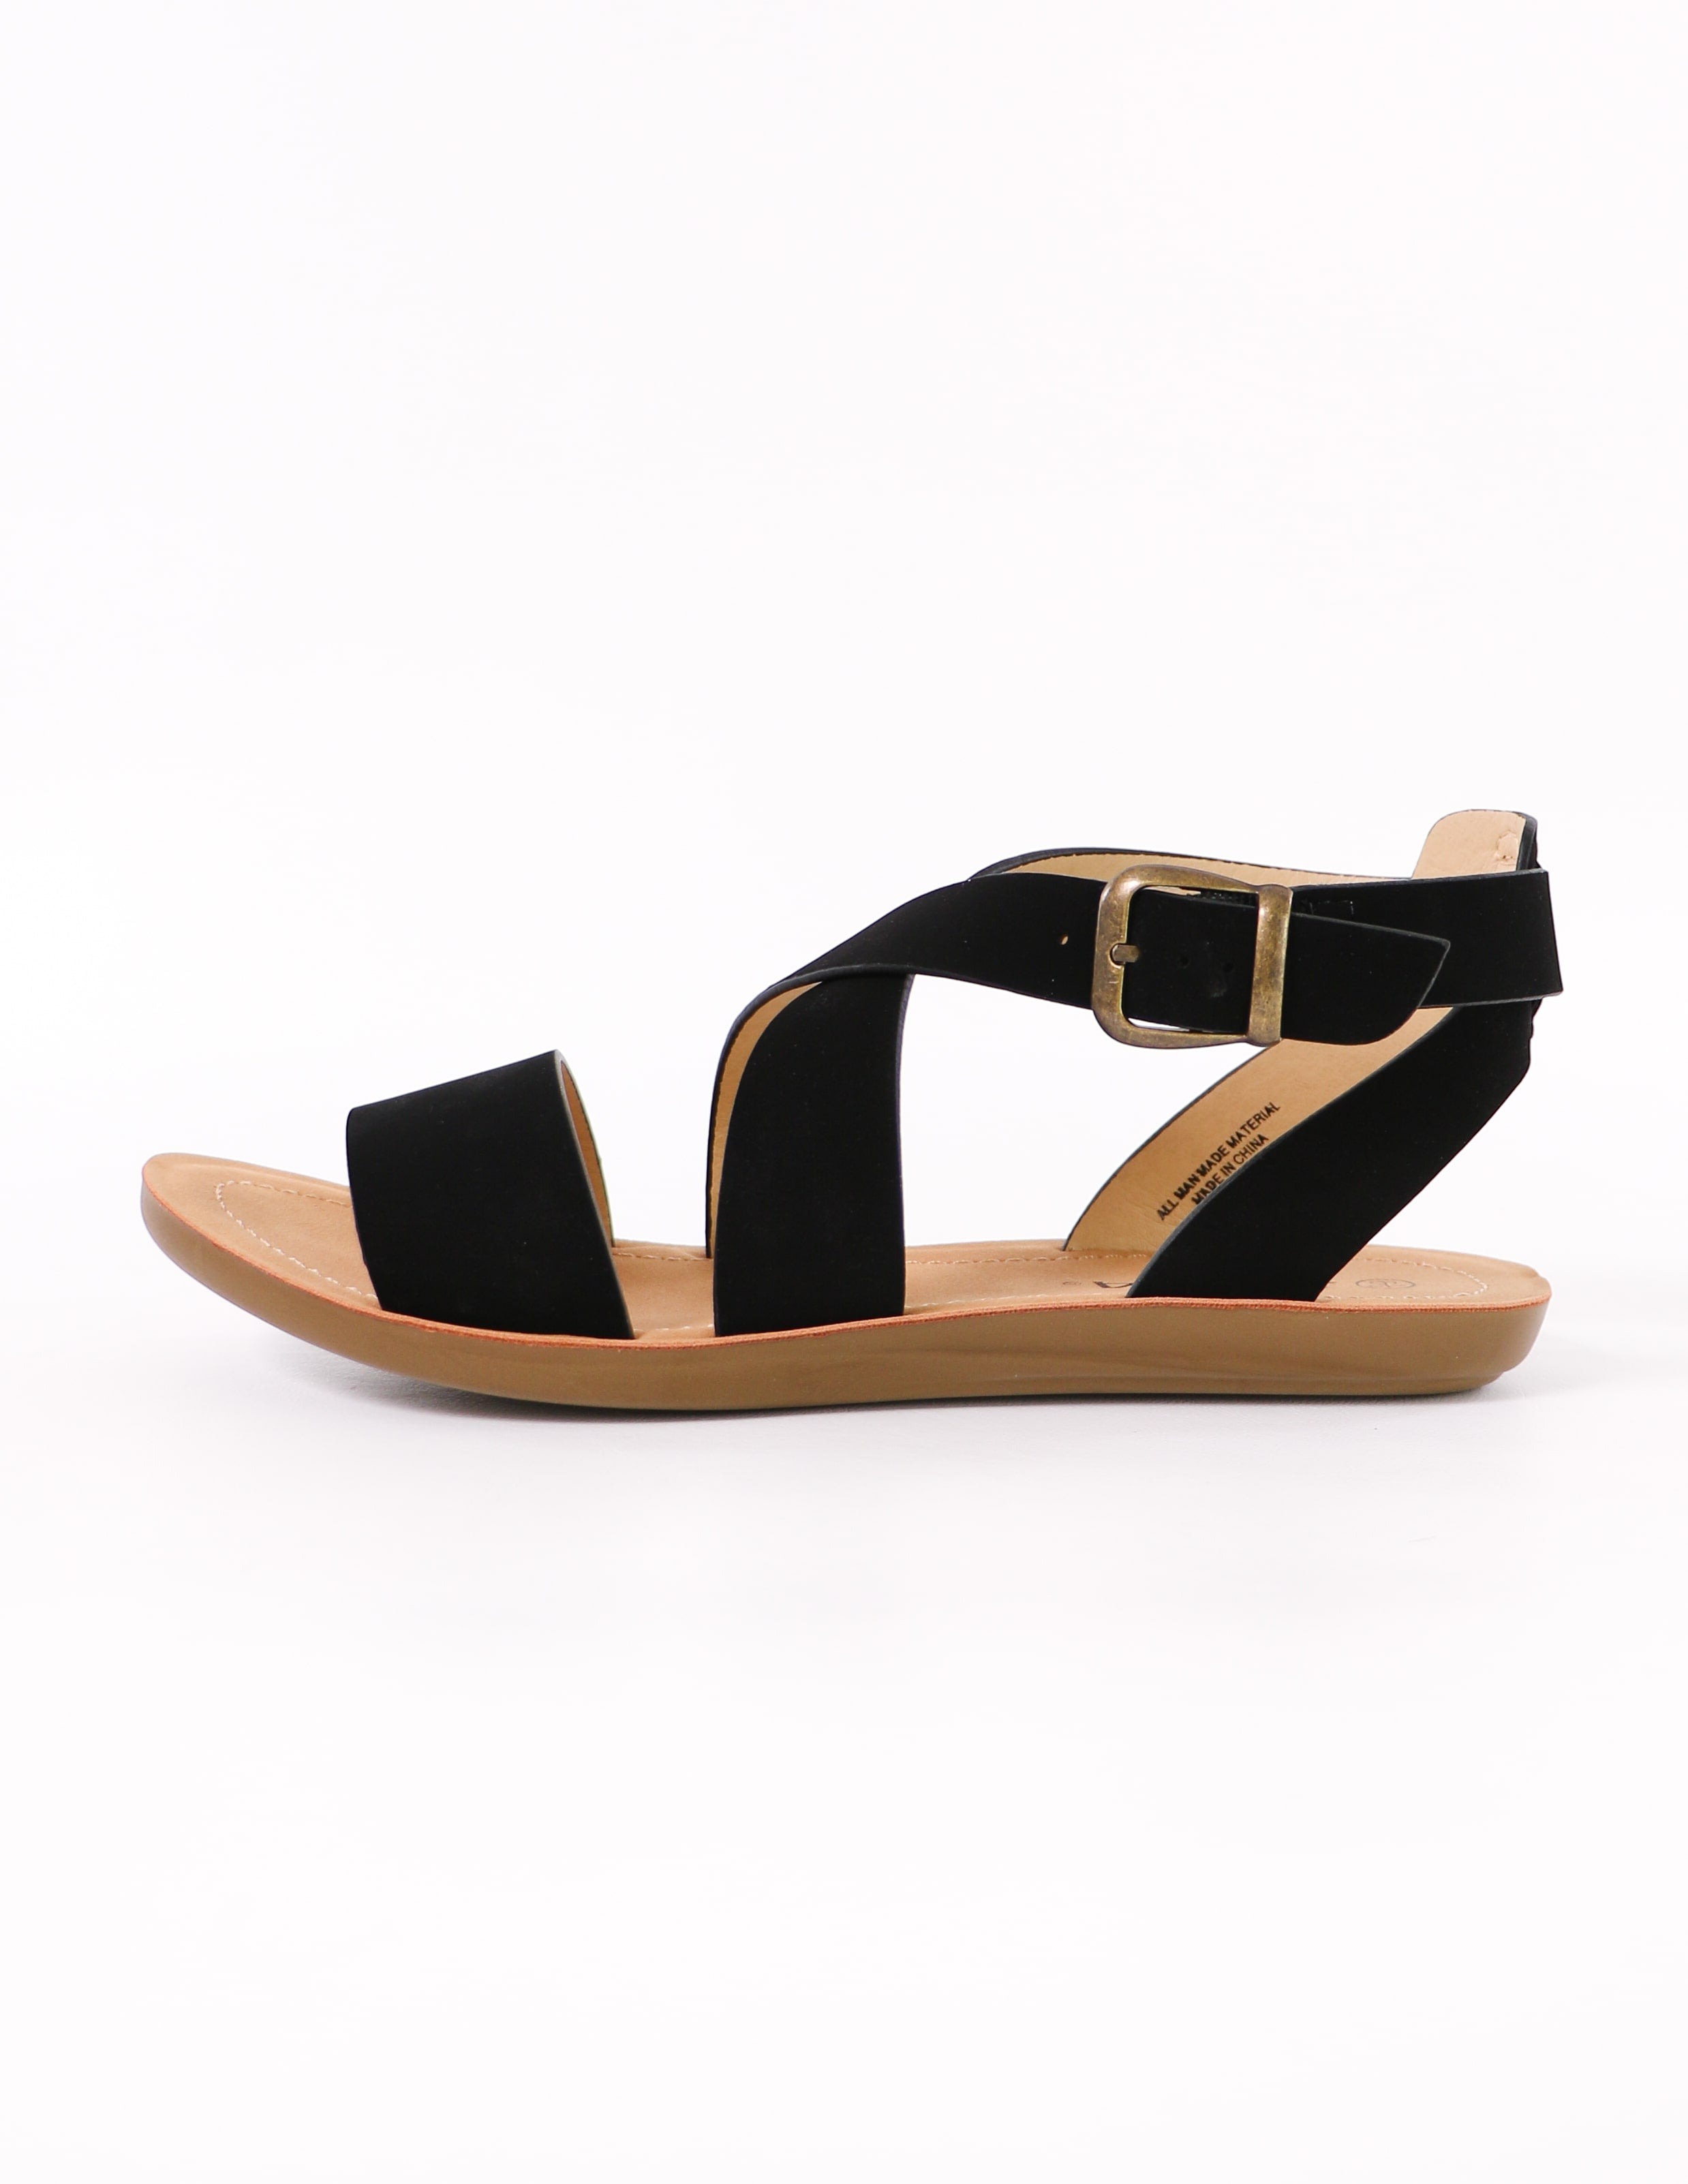 black criss cross my heart strappy sandal with buckle